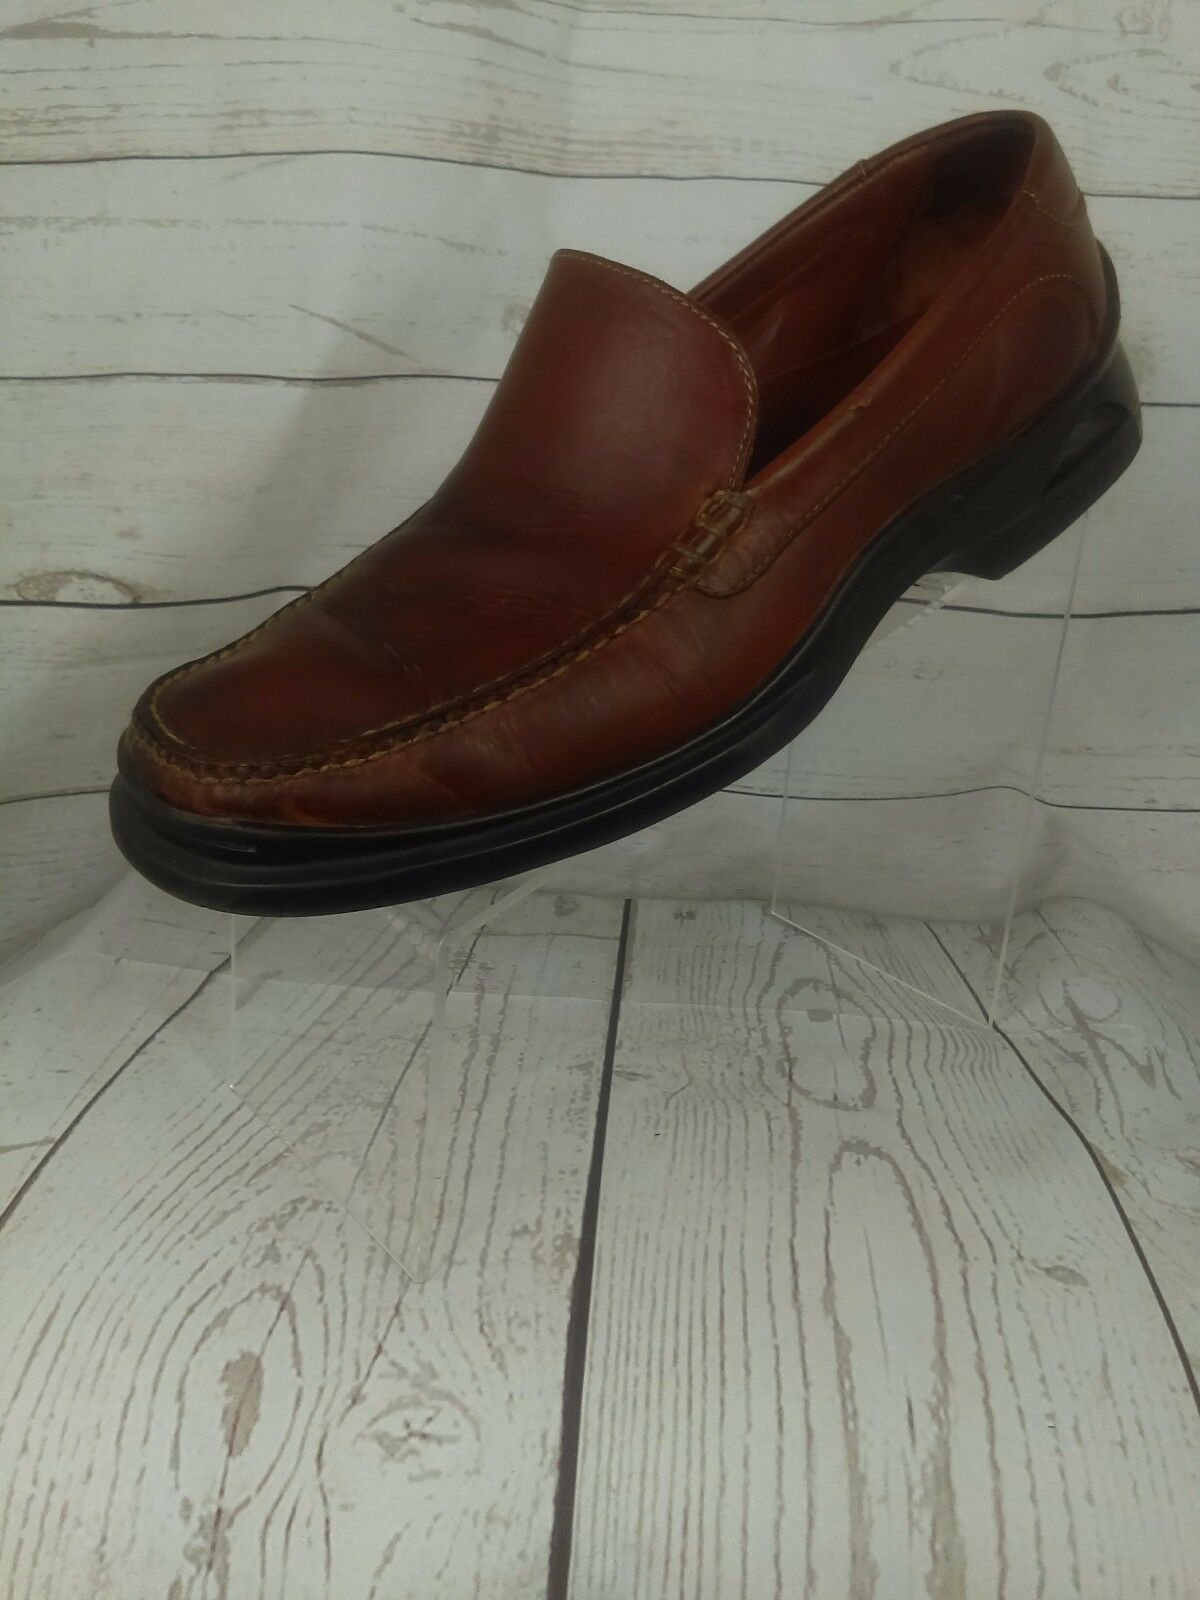 Cole Haan Mens Brown Leather Pinch Loafers Venetian Vamp 10.5 M Great Condition